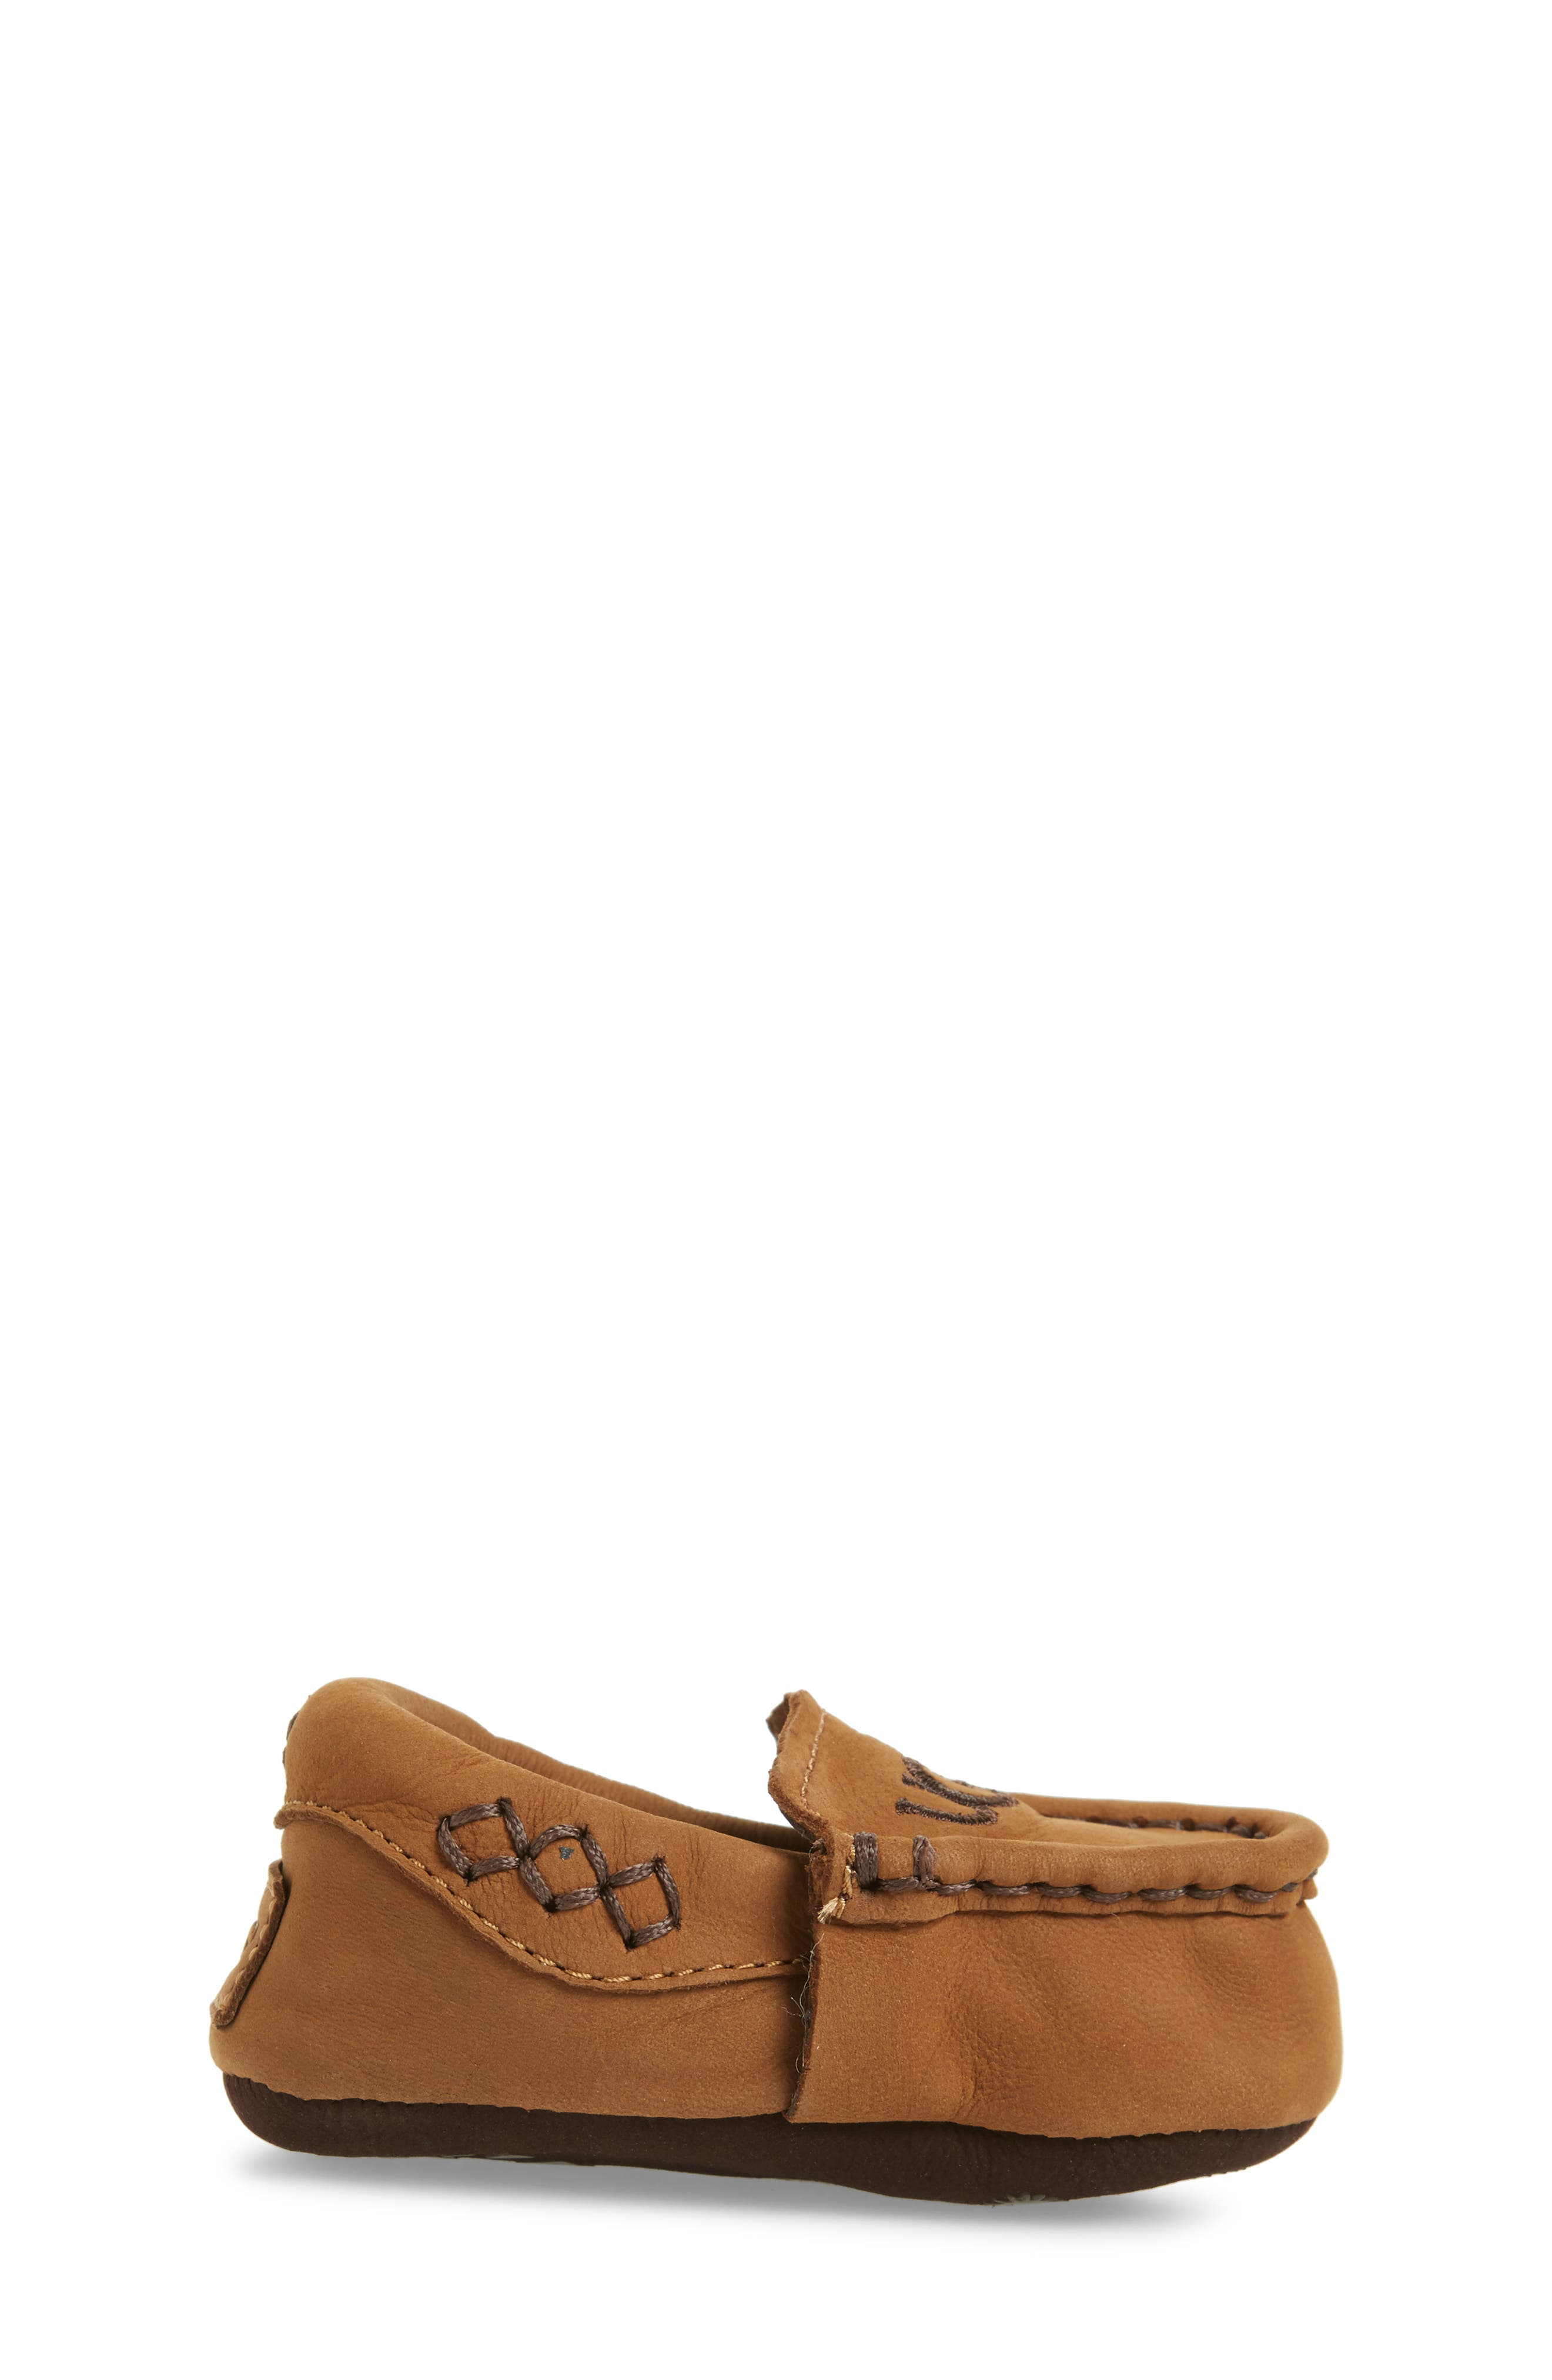 Sivia Loafer,                             Alternate thumbnail 3, color,                             219